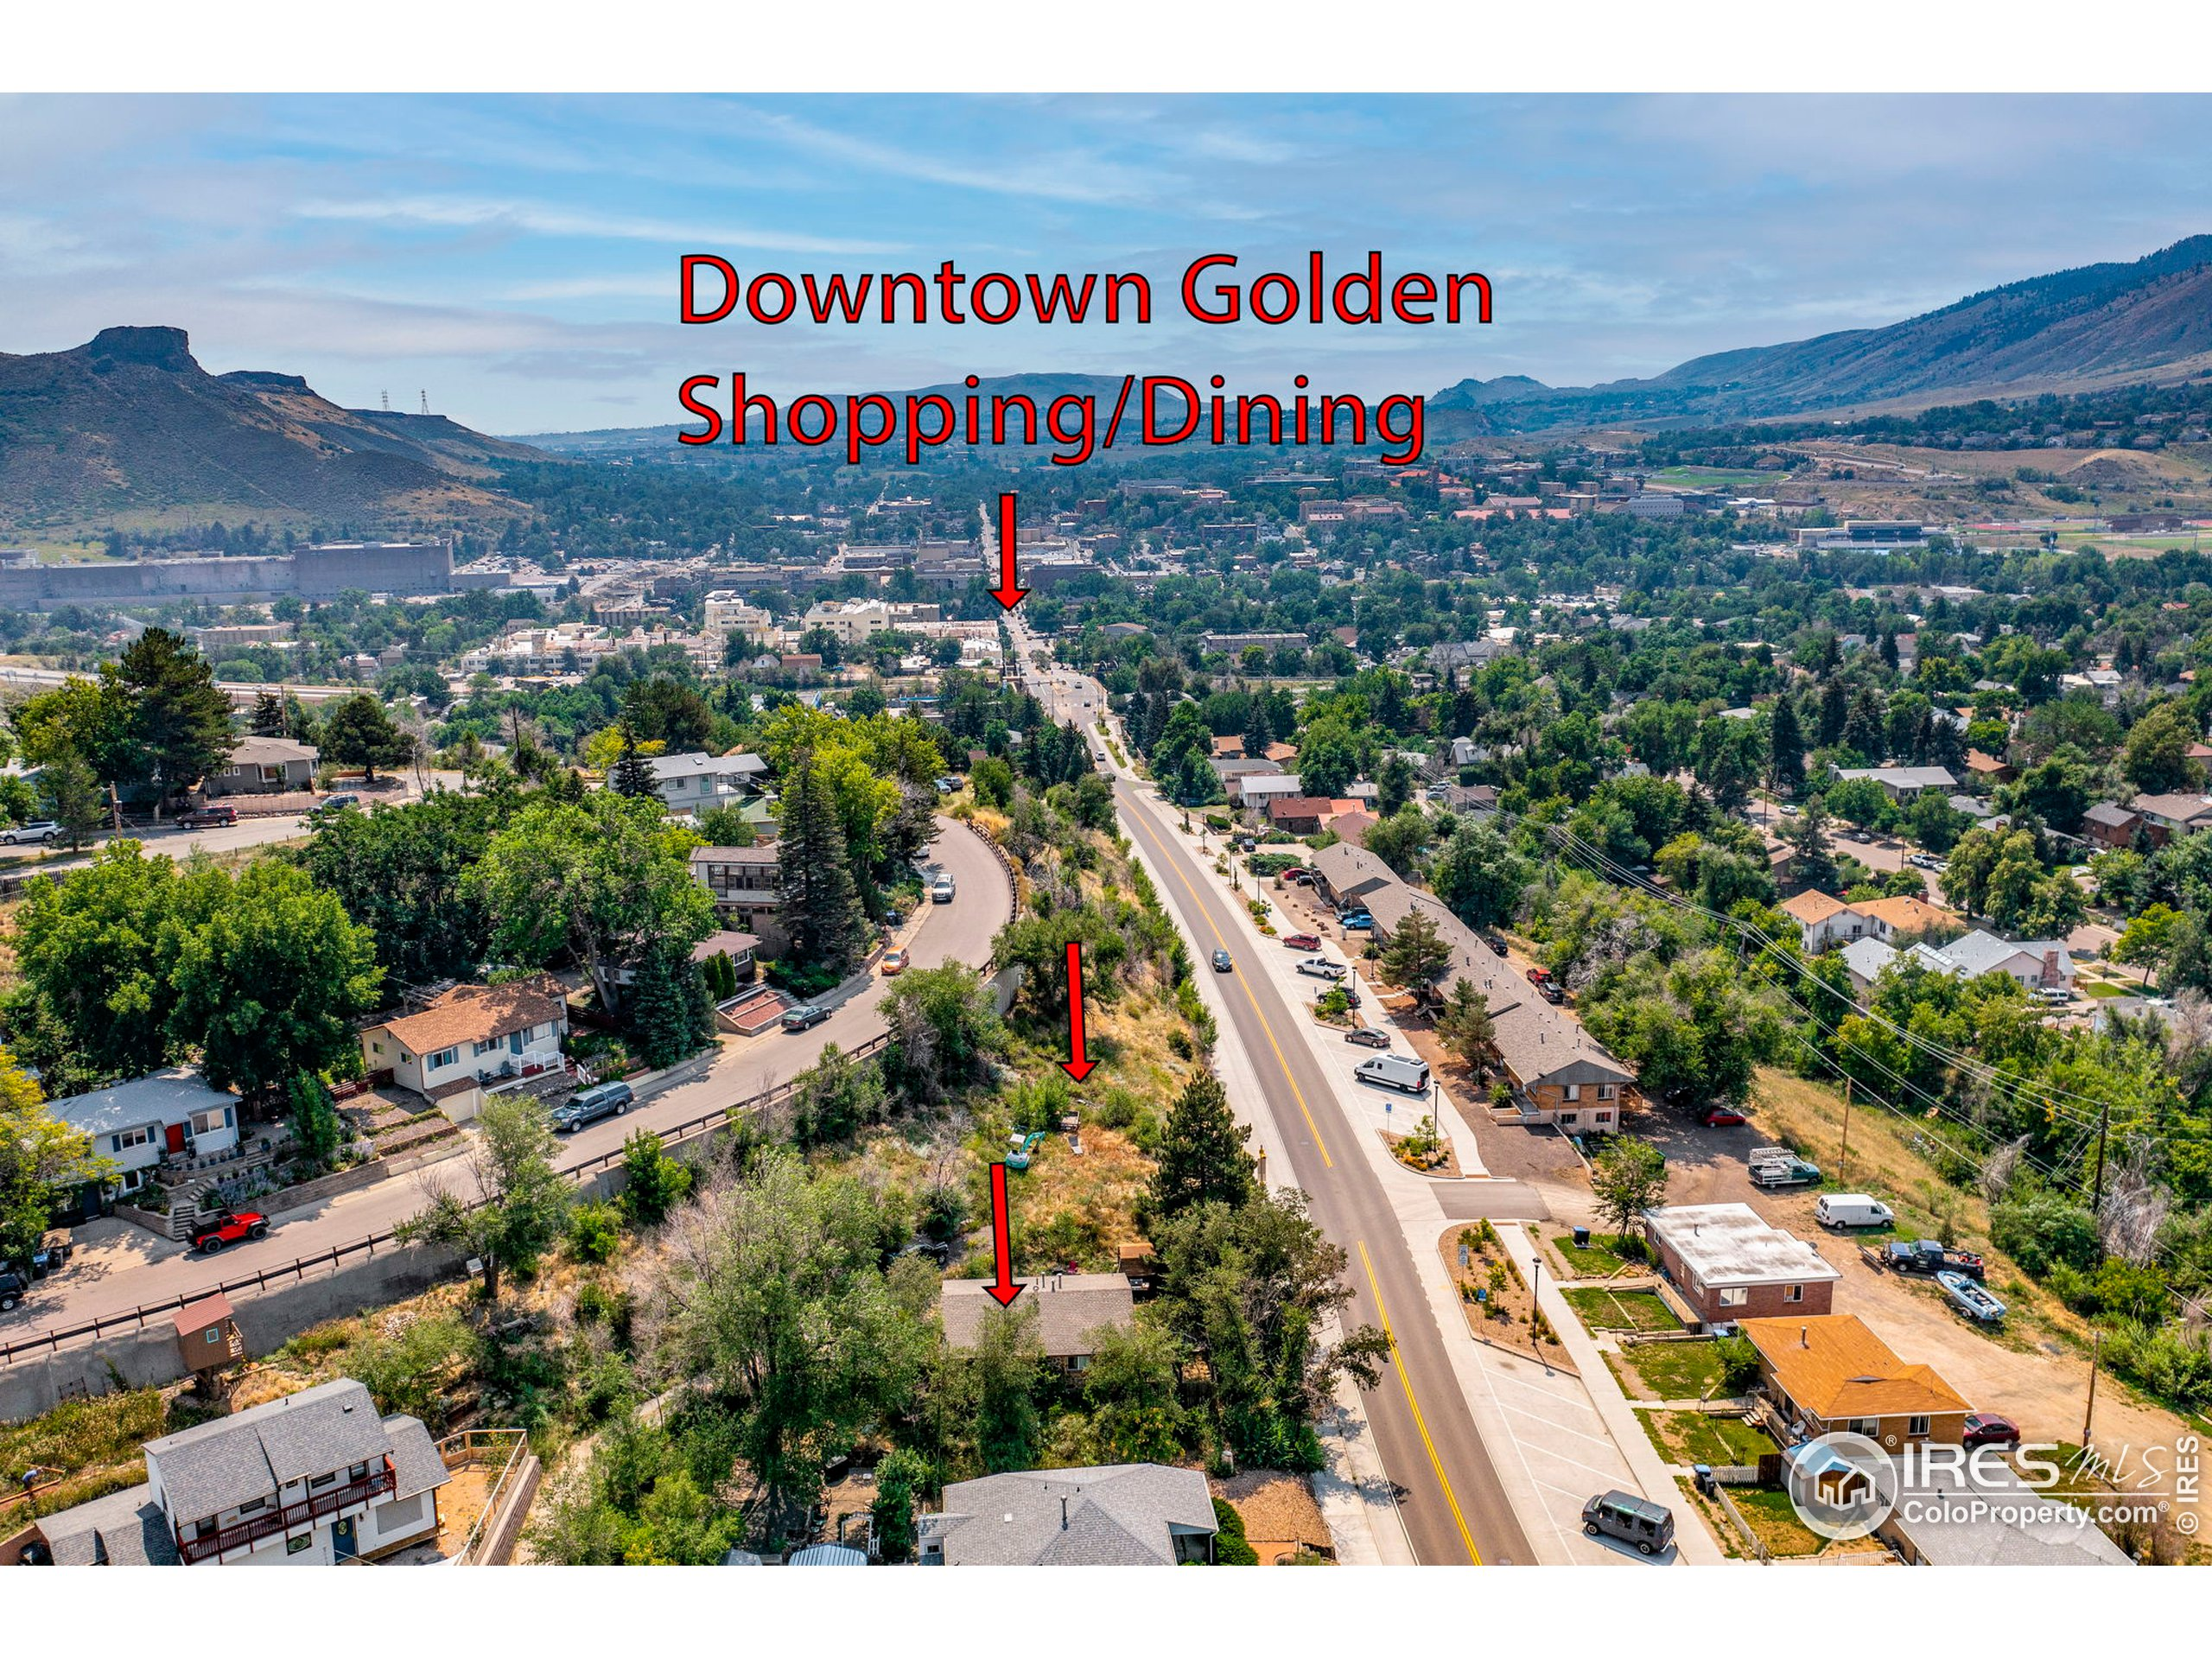 Walking distance to Old Towne Golden